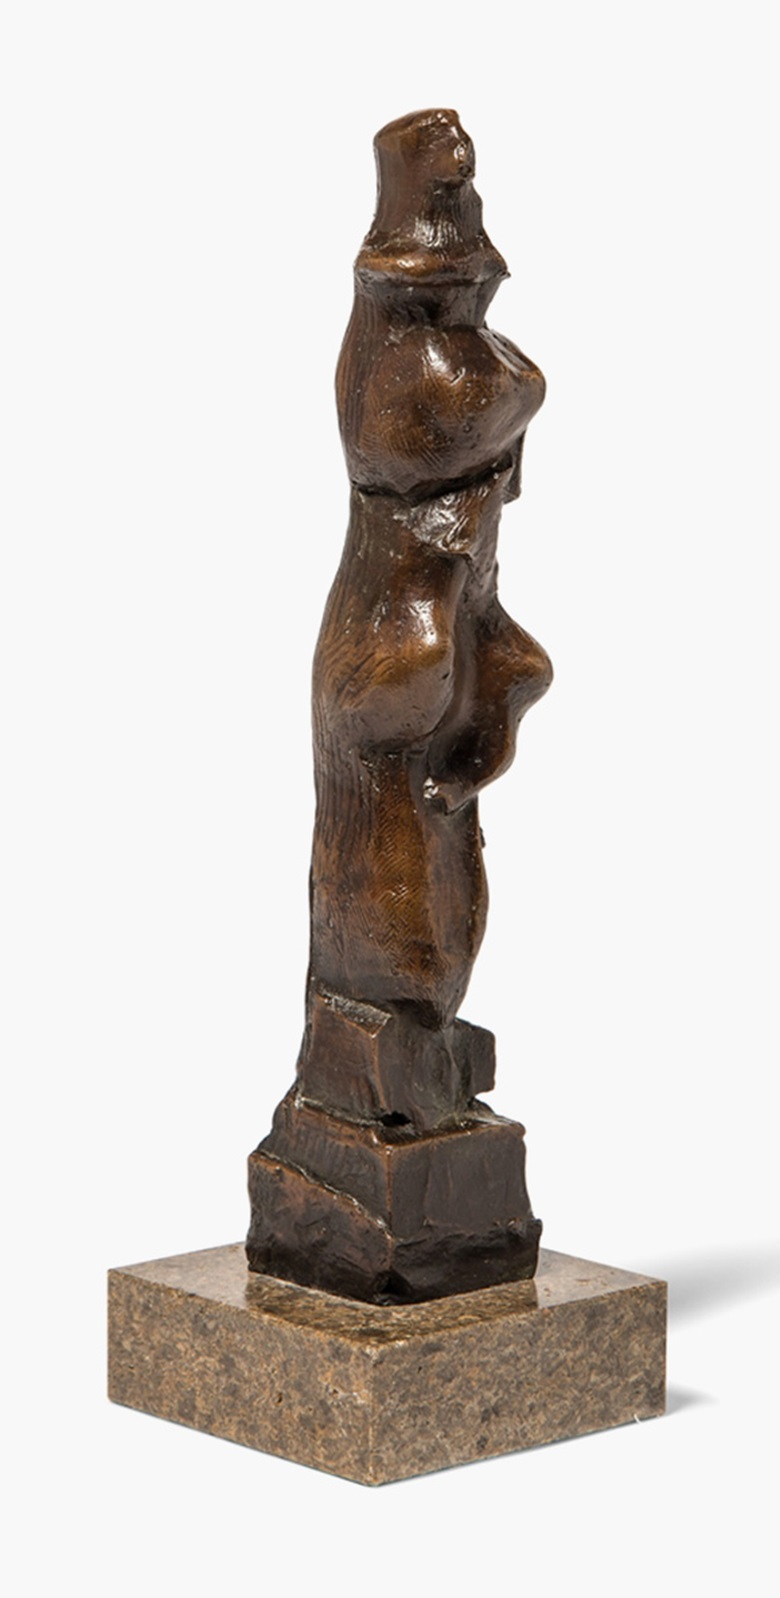 Henry Moore, O.M., C.H. (1898-1986), Upright Motive B, Conceived in 1968. This is cast 19. Bronze with a goldbrown patina, 11½ in (29 cm) high, excluding composite base. Estimate £12,000-18,000. This lot is offered in ModernBritish Art Online, 2-13 December 2016